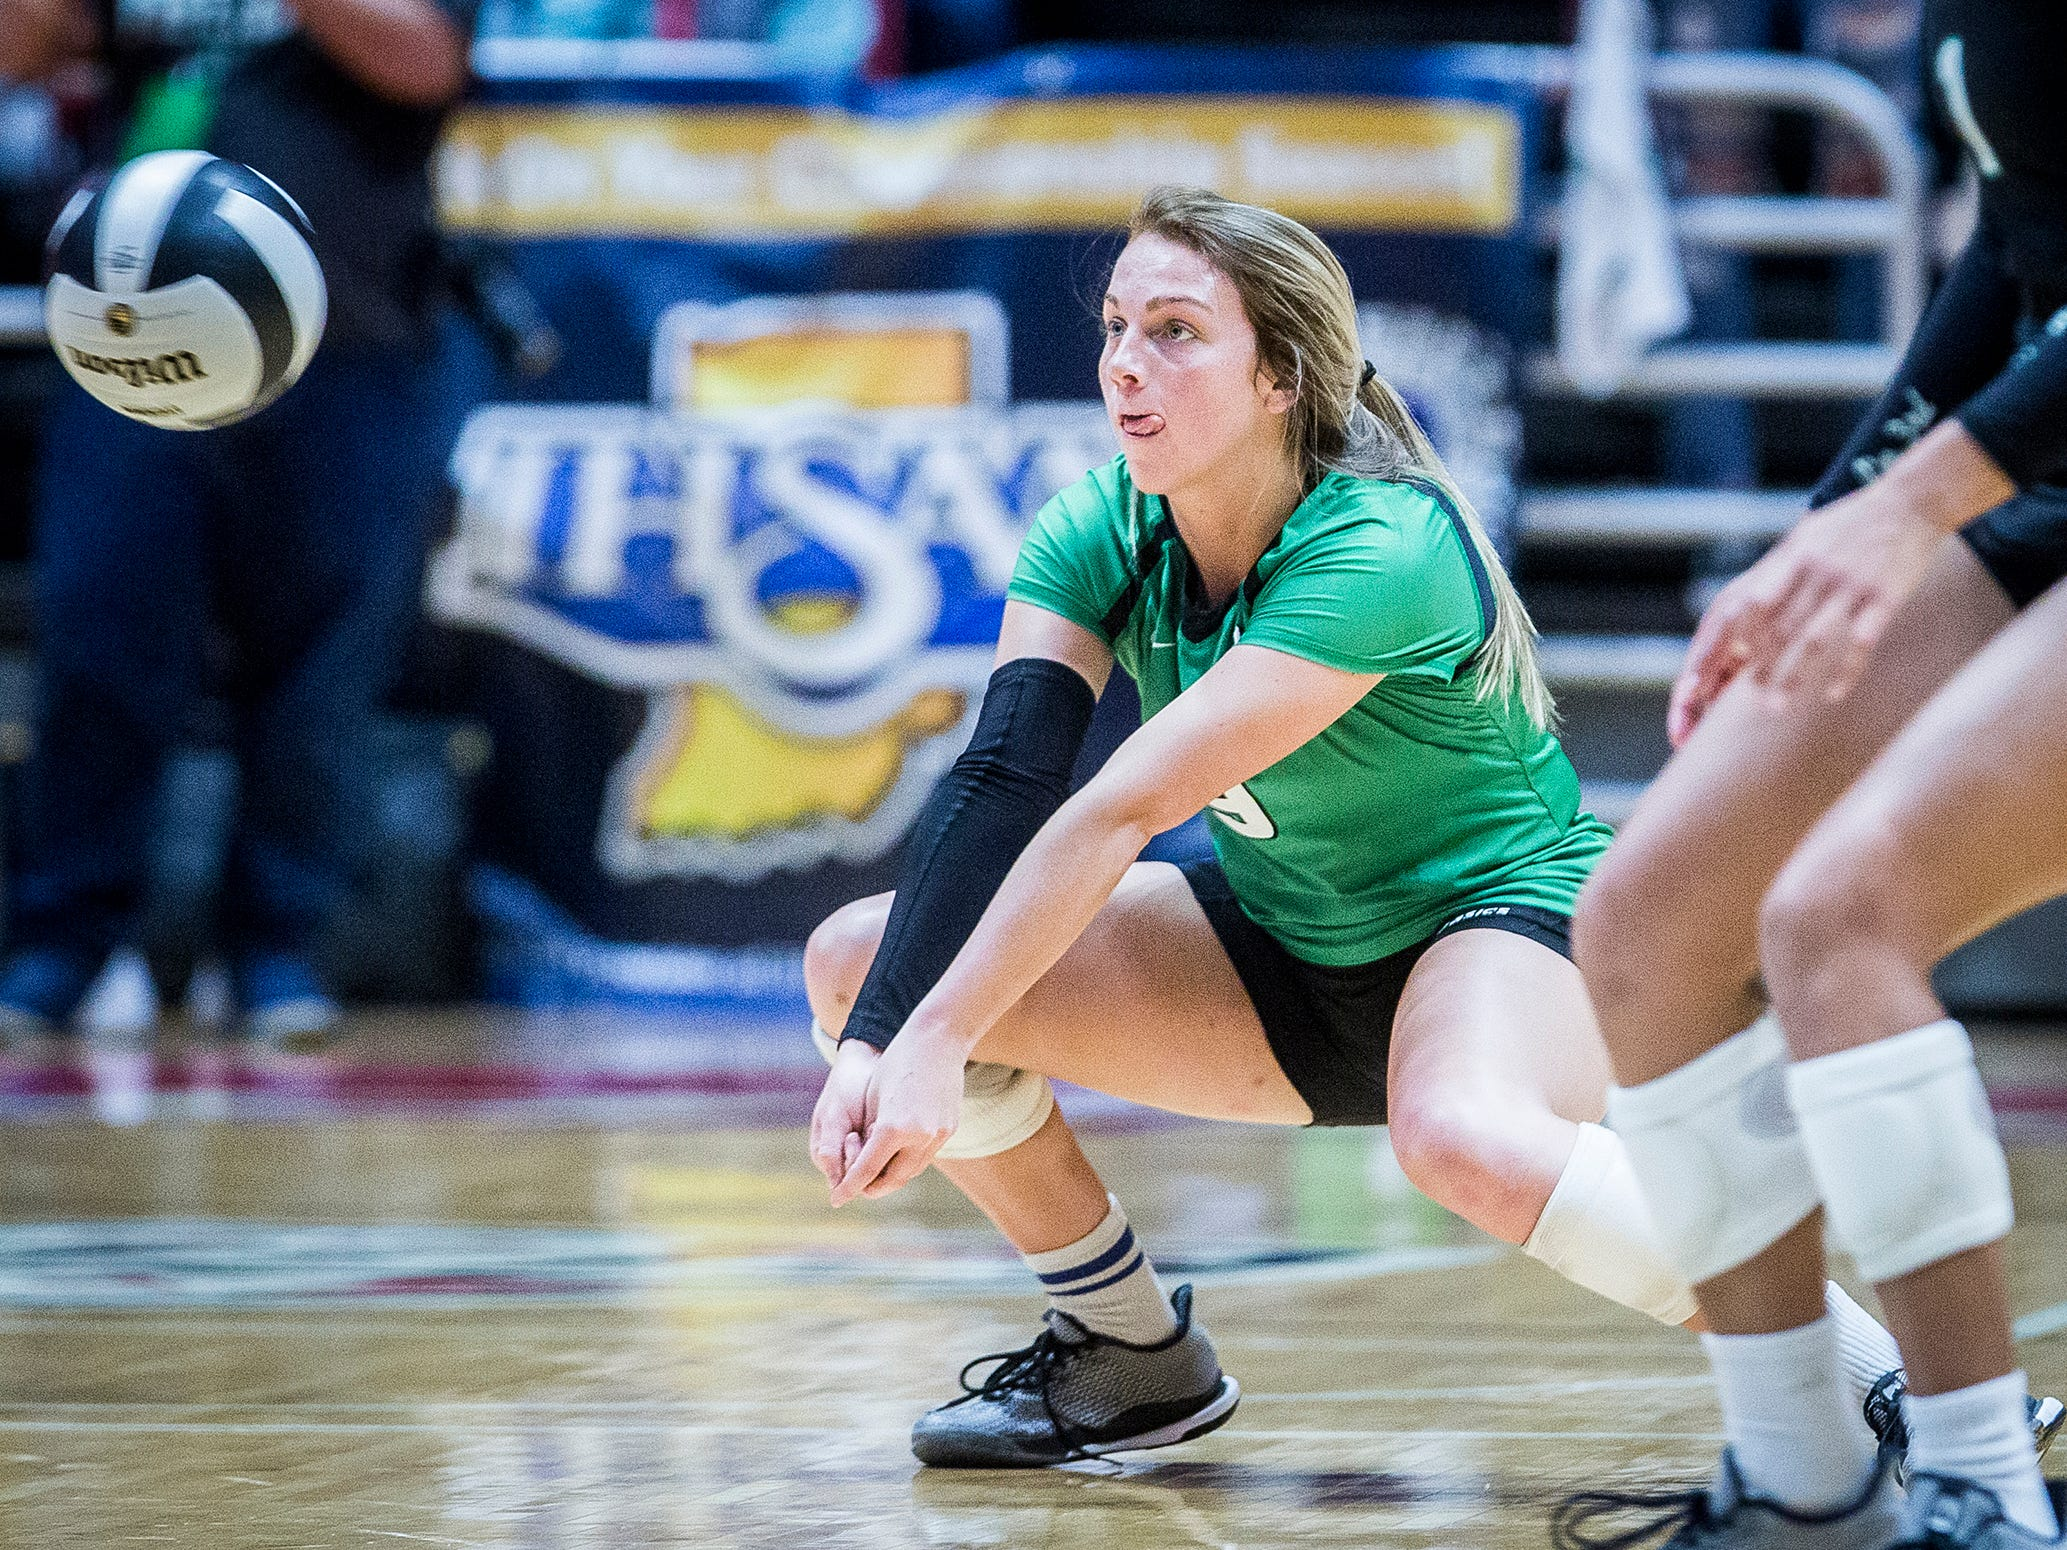 Yorktown's Kylie Murr digs a ball in the state championship match. Murr was one of three Tigers that made all-state.